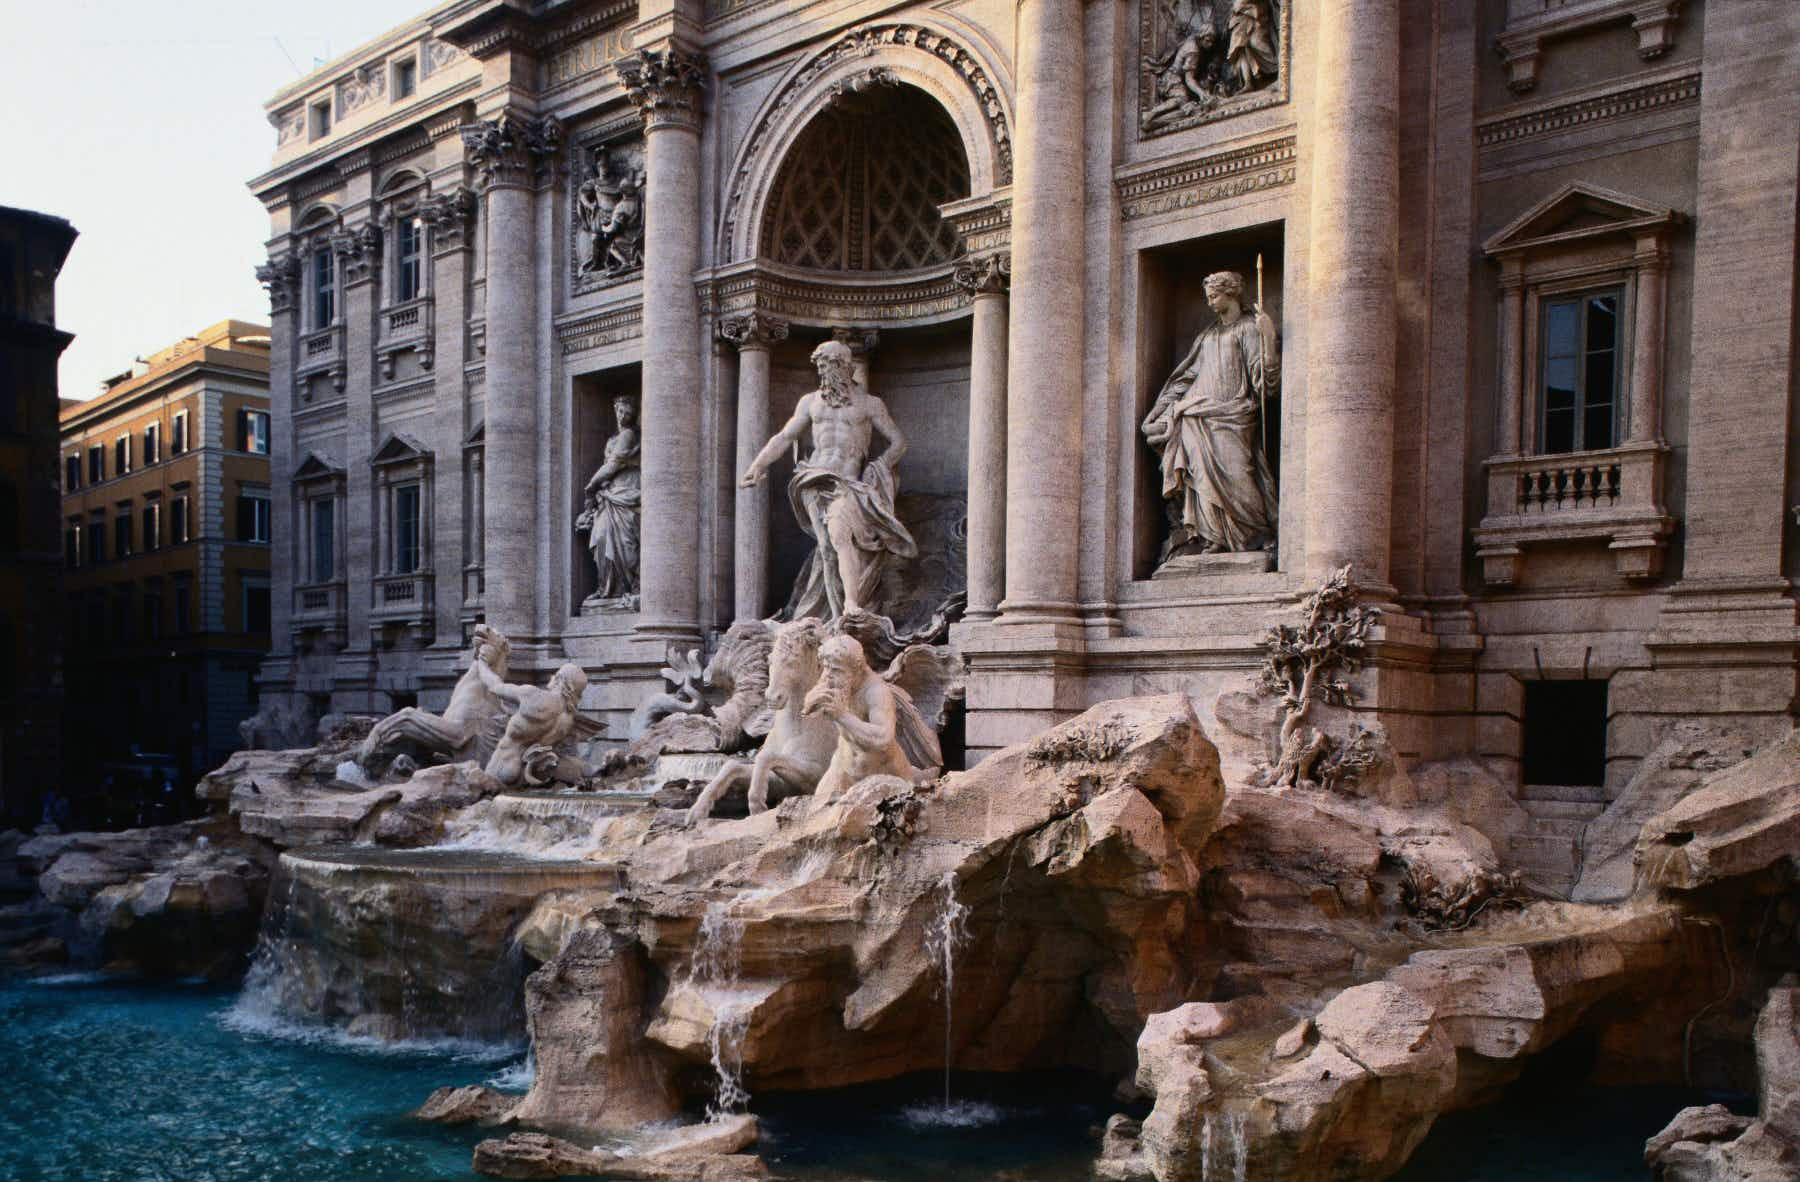 Tourists are literally fighting over the best selfie spot at the Trevi Fountain